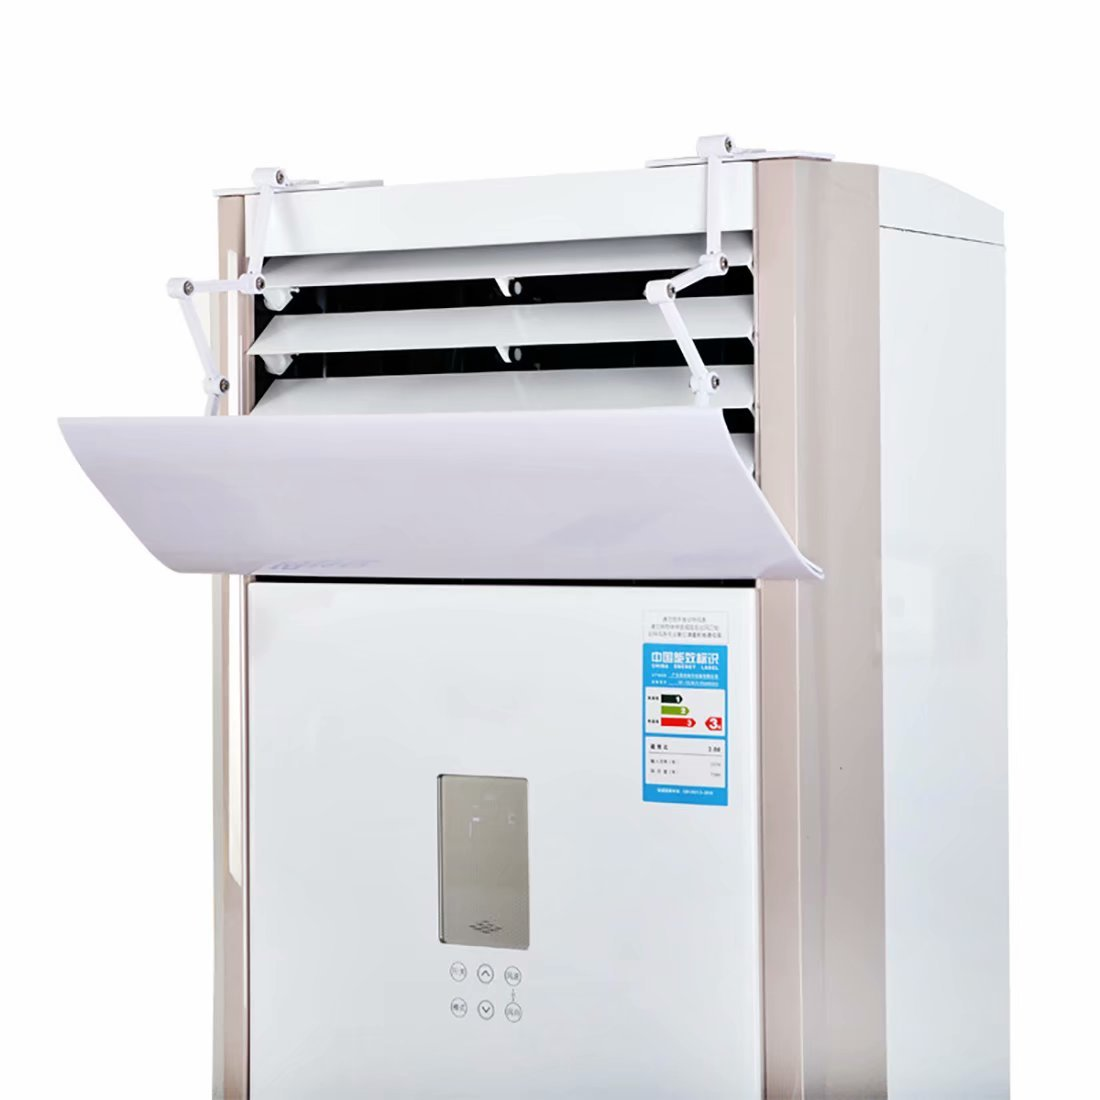 KTYJH Family Vertical Air Conditioning Windshield Windshield Anti-straight Blowing Living Room Adjustable Universal Cabinet Cabinet Air Conditioning Outlet Shelter Air